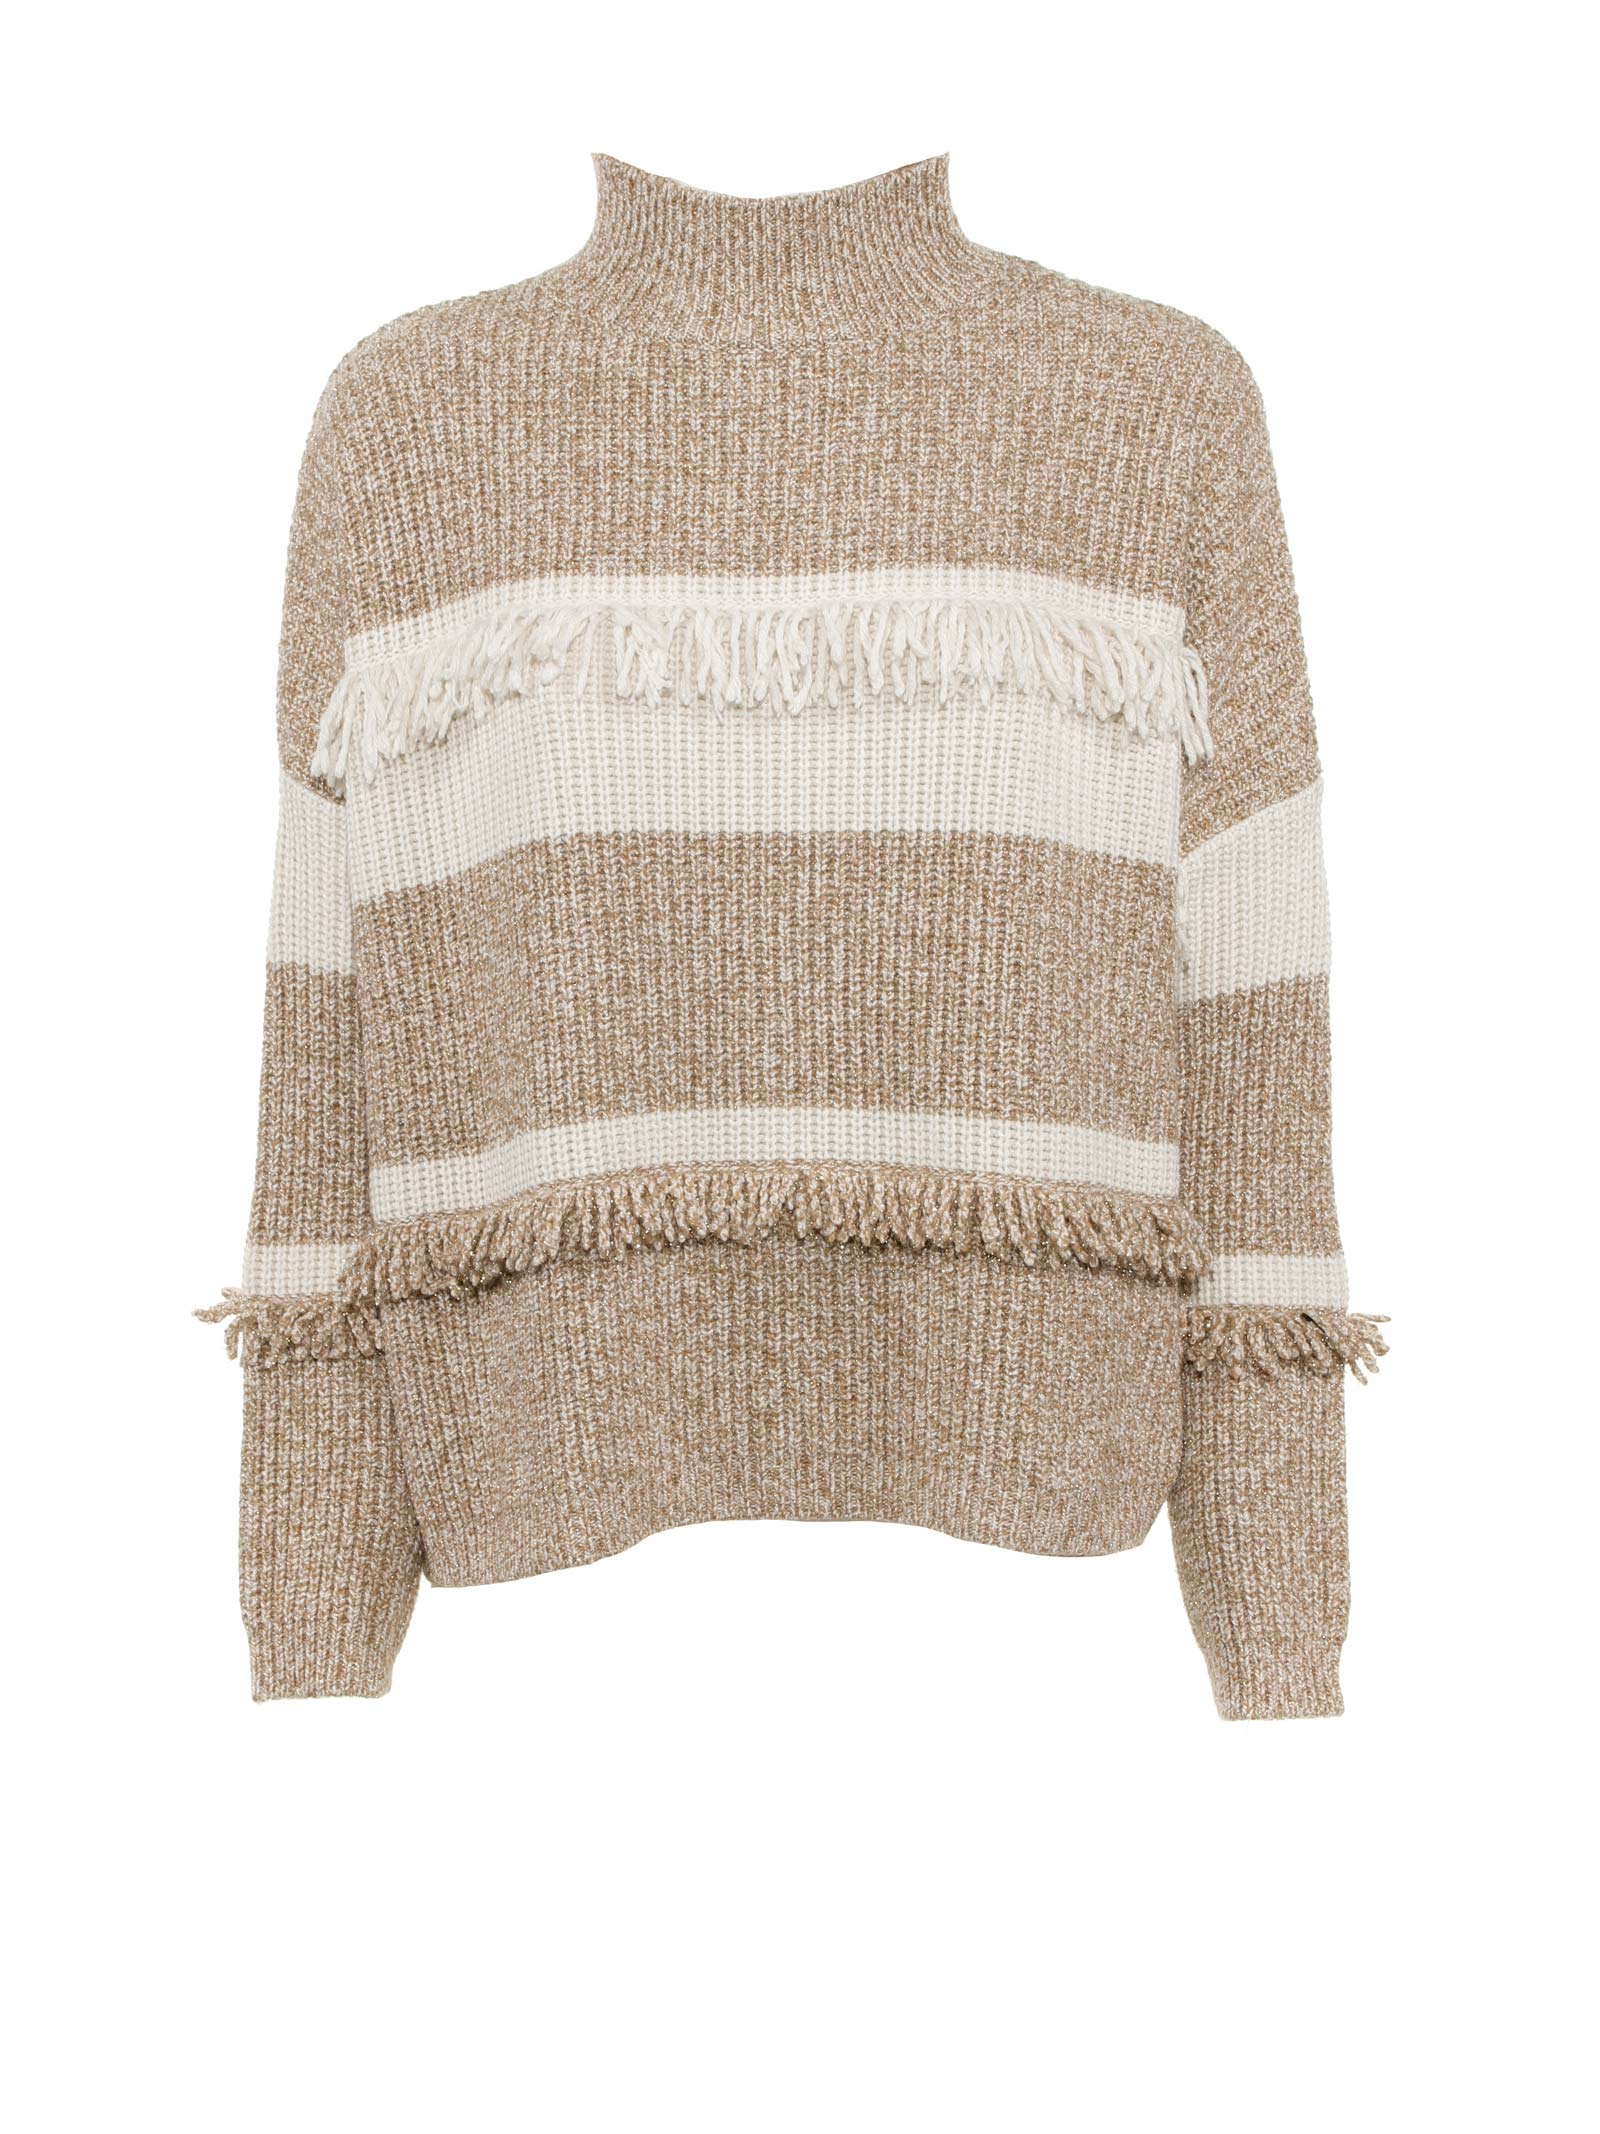 Sweater With White-beige Fringes